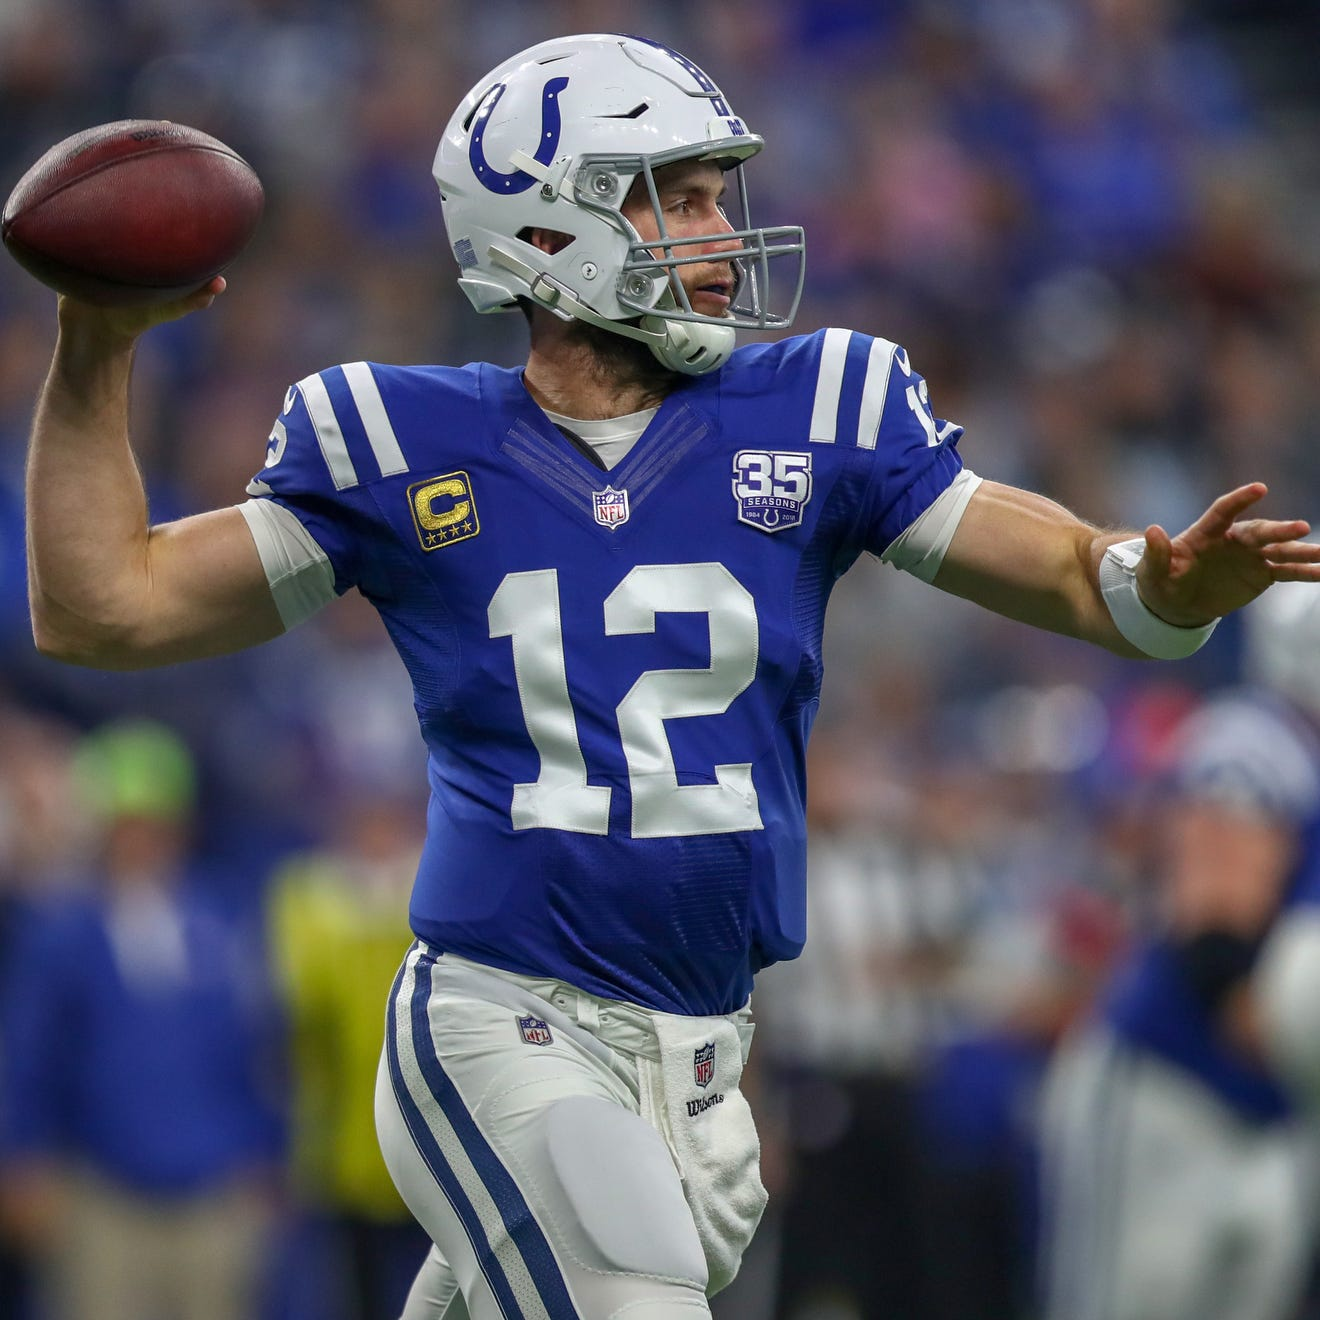 NFL Week 11 links: Colts can't hide after winning 4 in a row